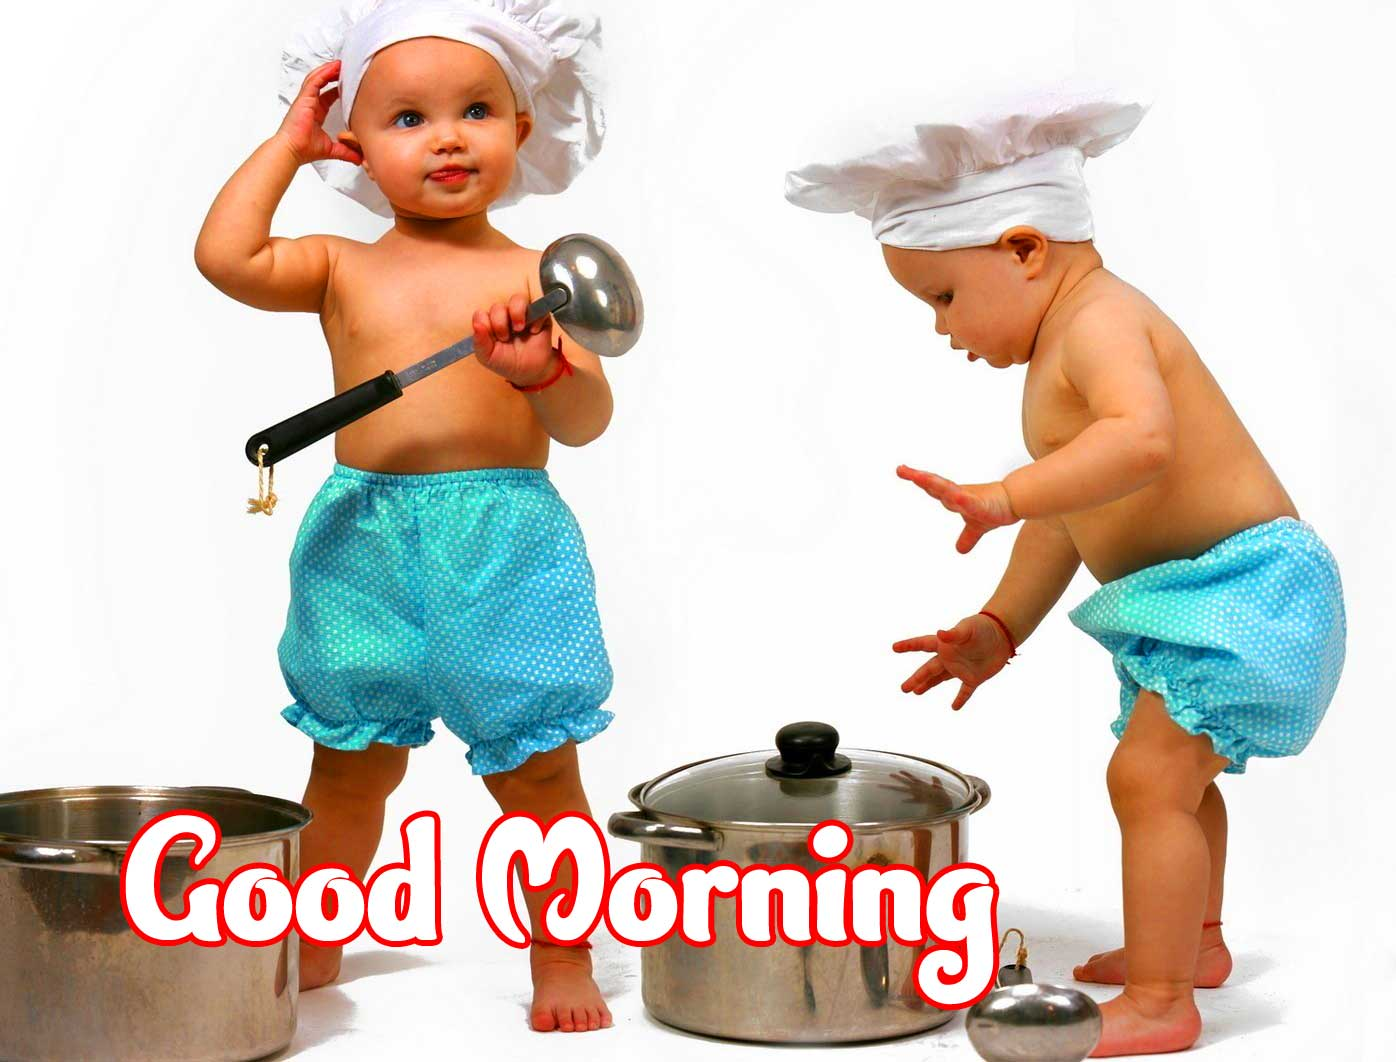 Cute Baby Boys & Girls Good Morning Images Pics Download Latest